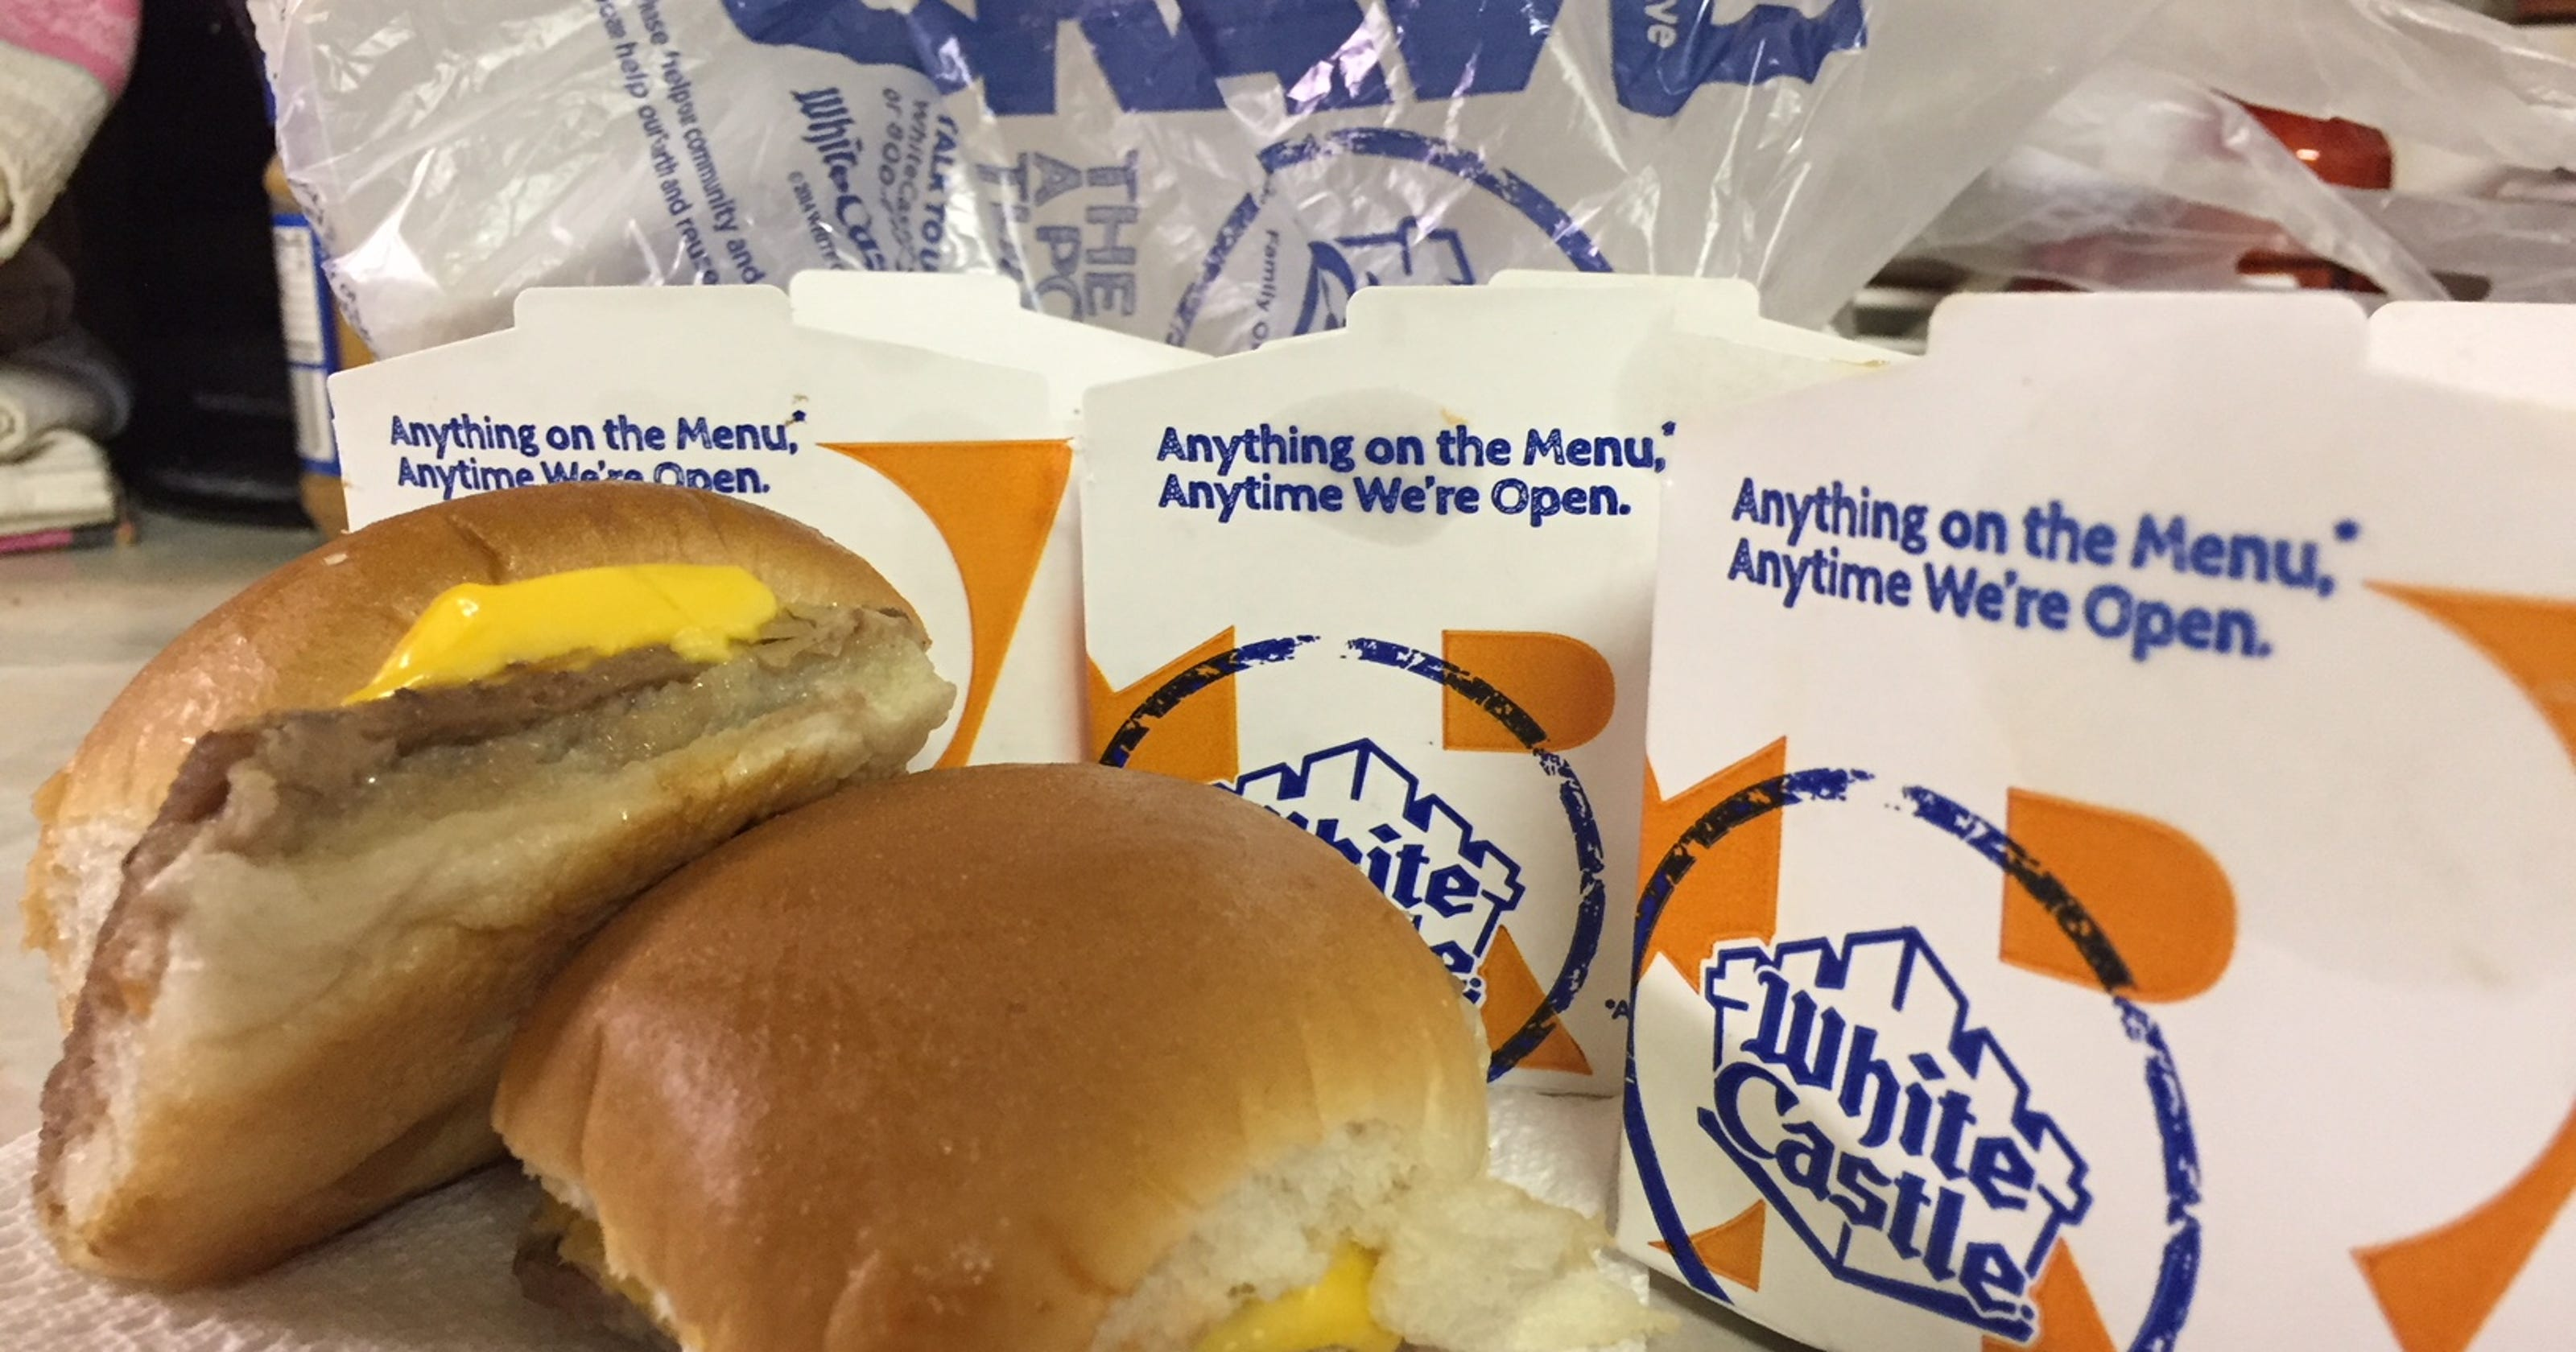 5 questions about White Castle coming to Arizona answered